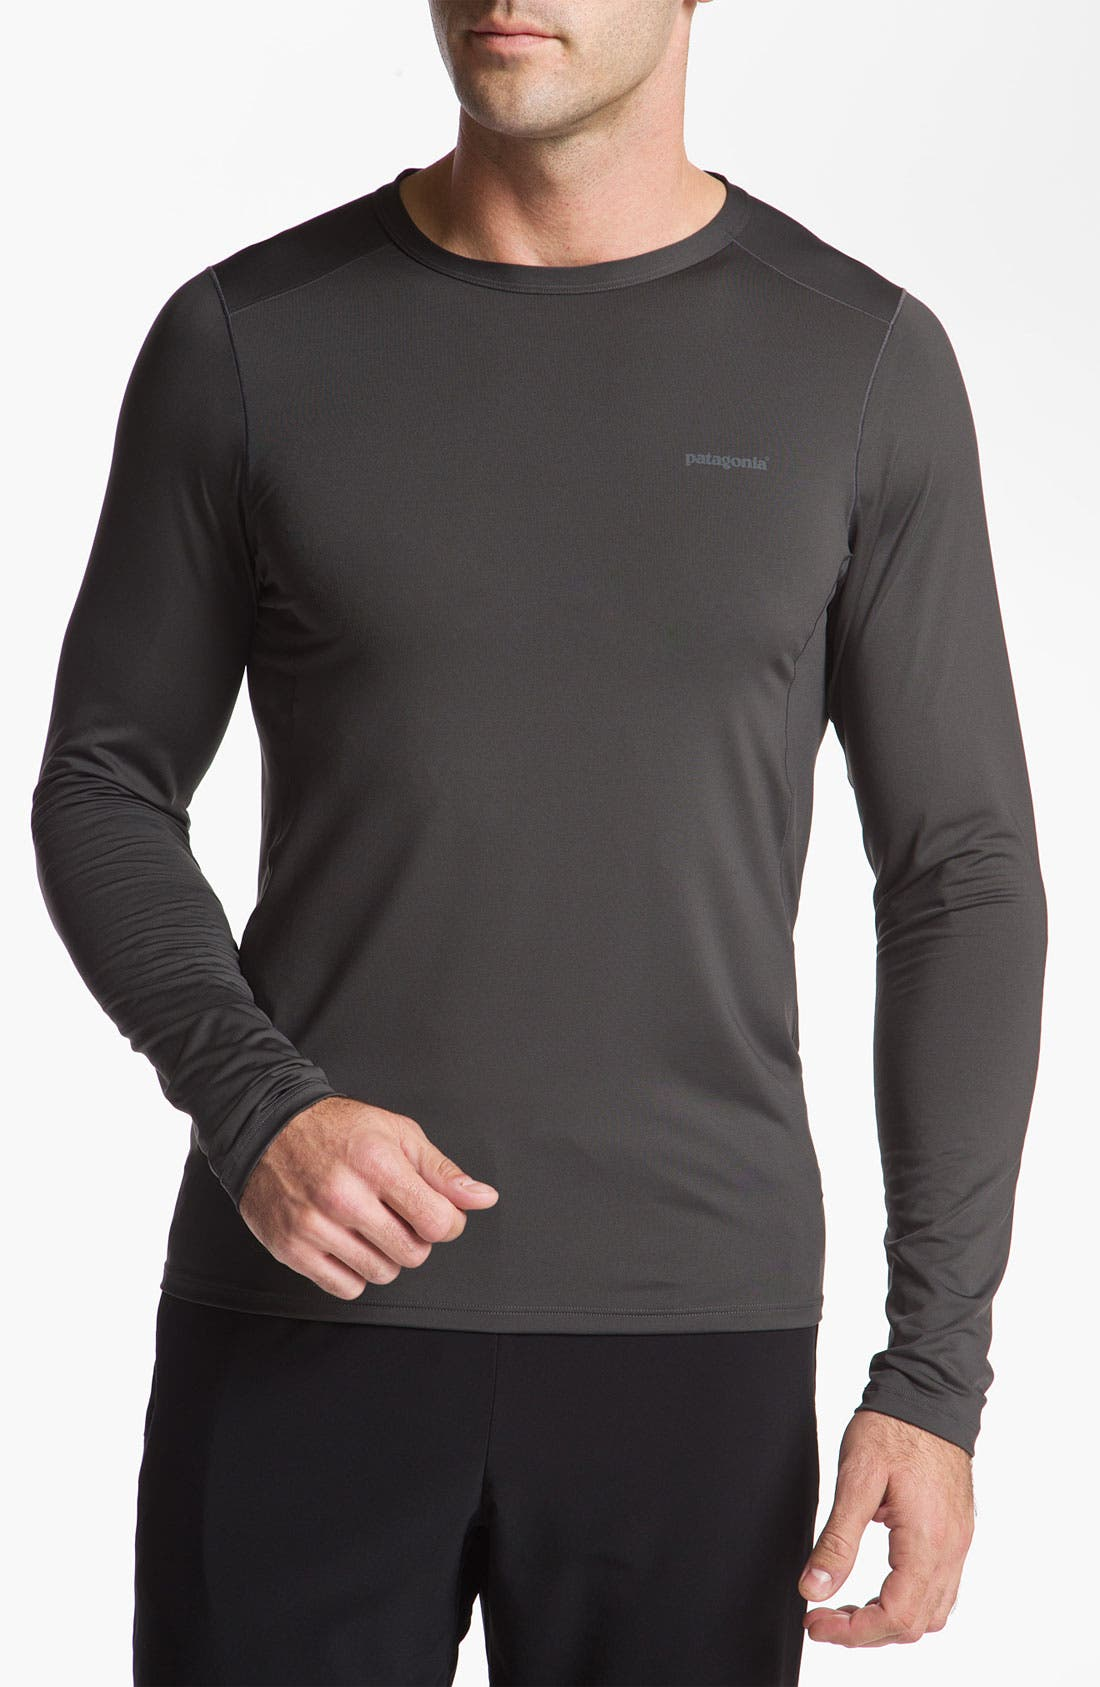 Main Image - Patagonia 'Capilene' Long Sleeve T-Shirt (Online Exclusive)